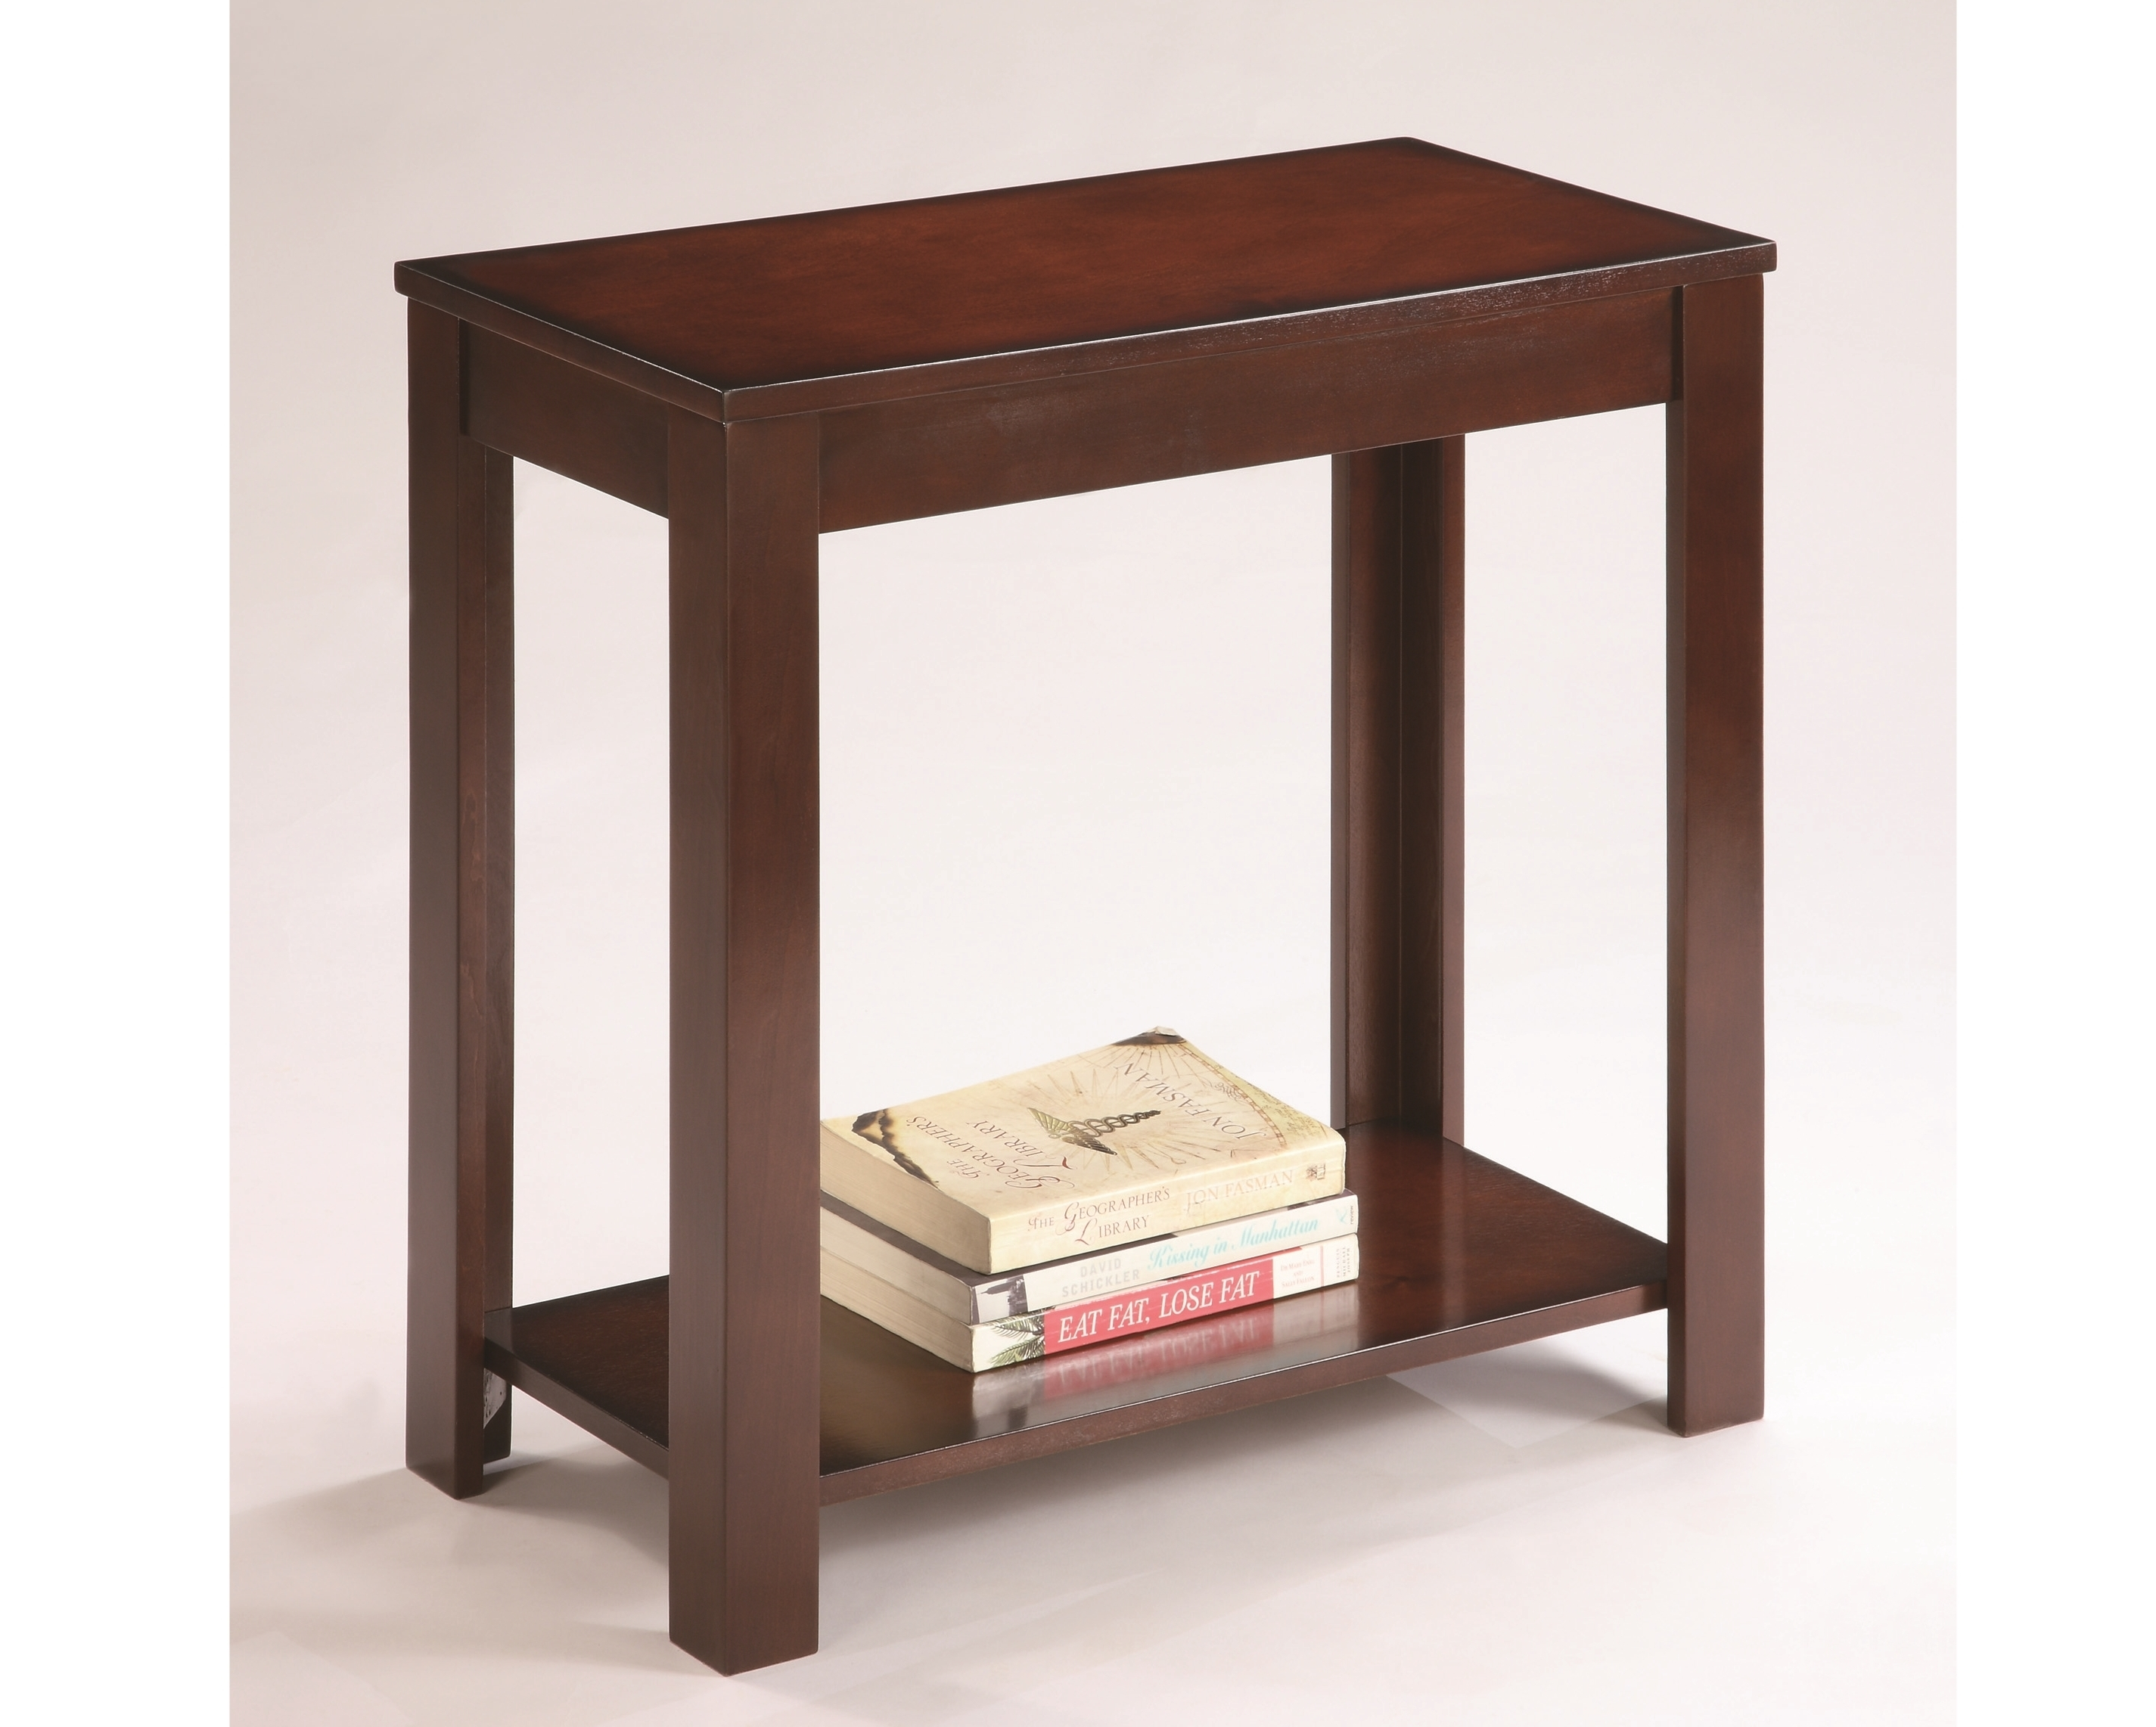 cm7710-chair-side-table-2